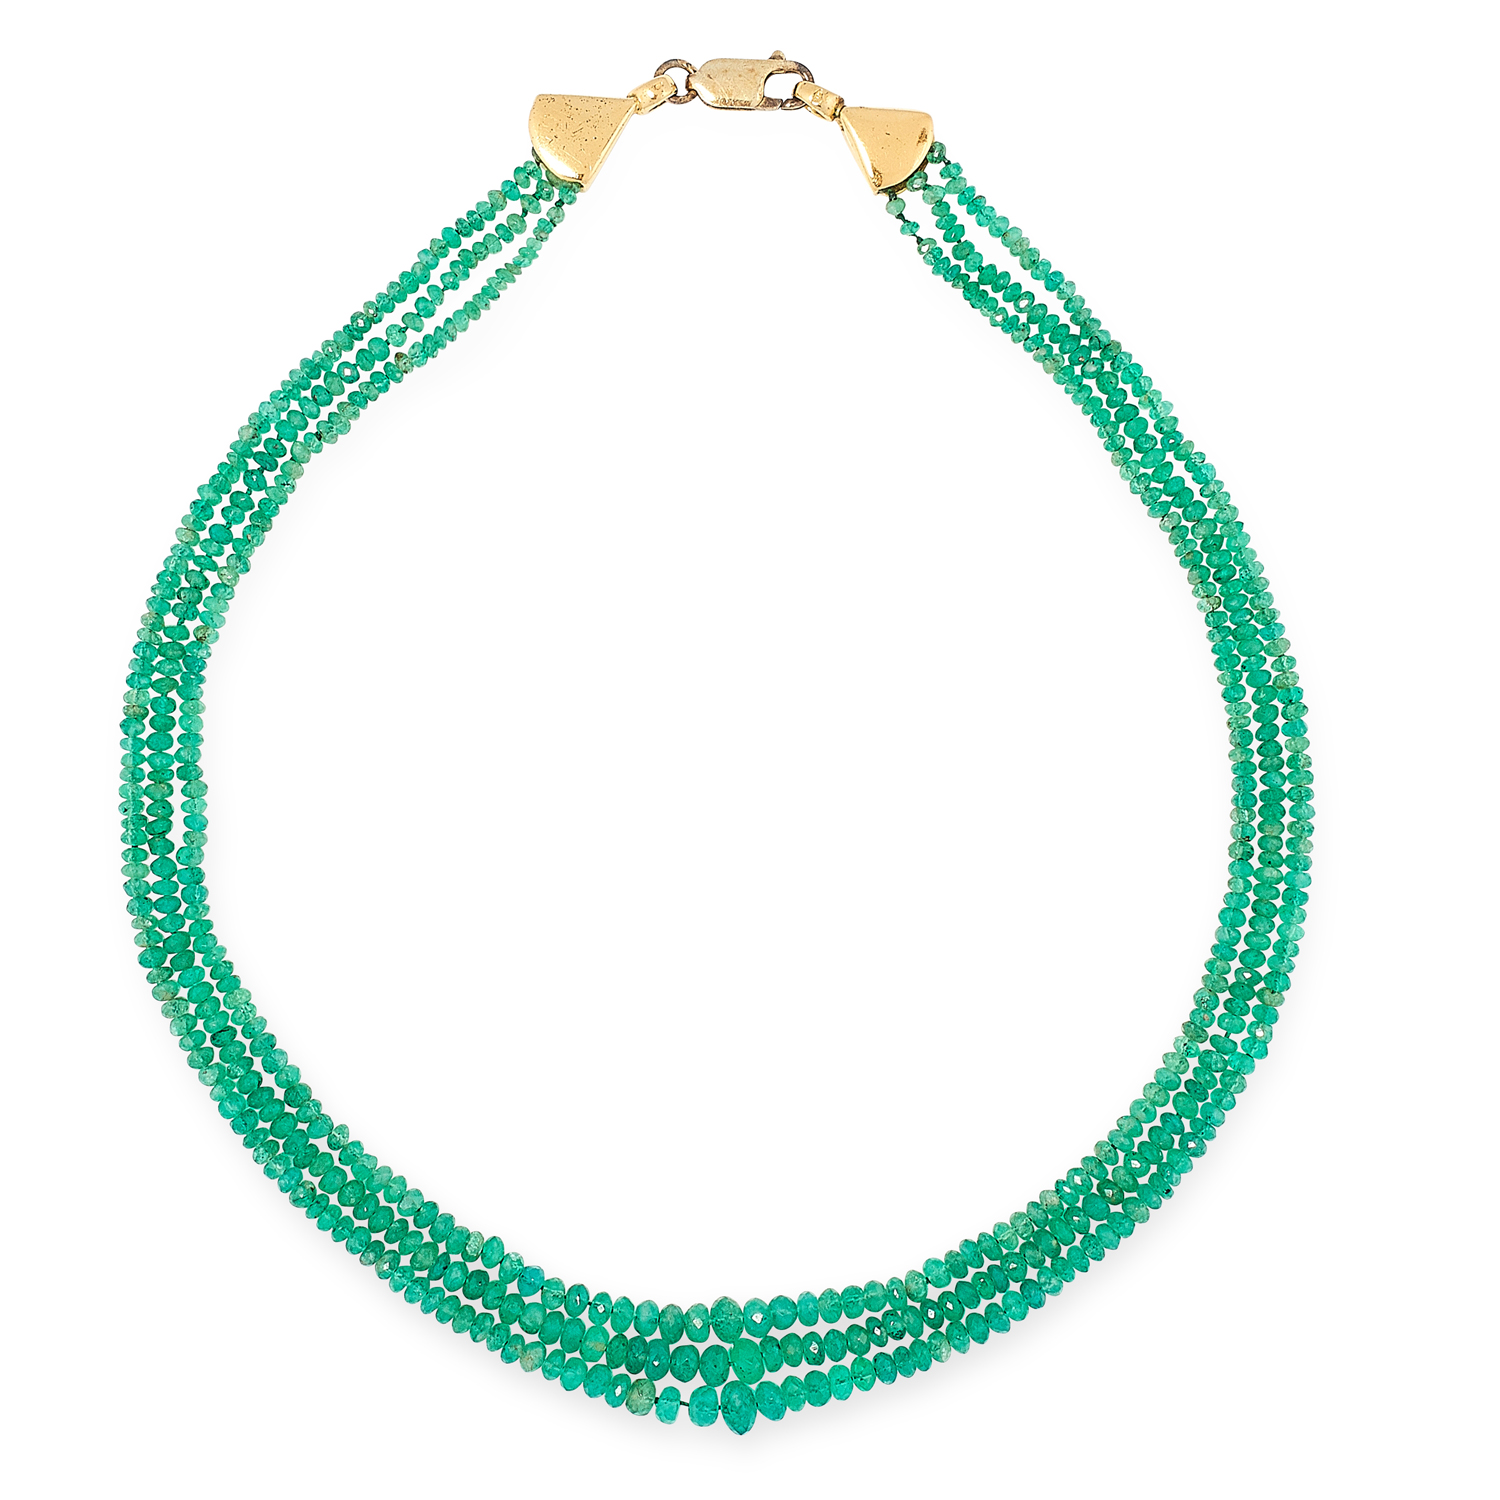 AN EMERALD BEAD NECKLACE set with three rows of fa